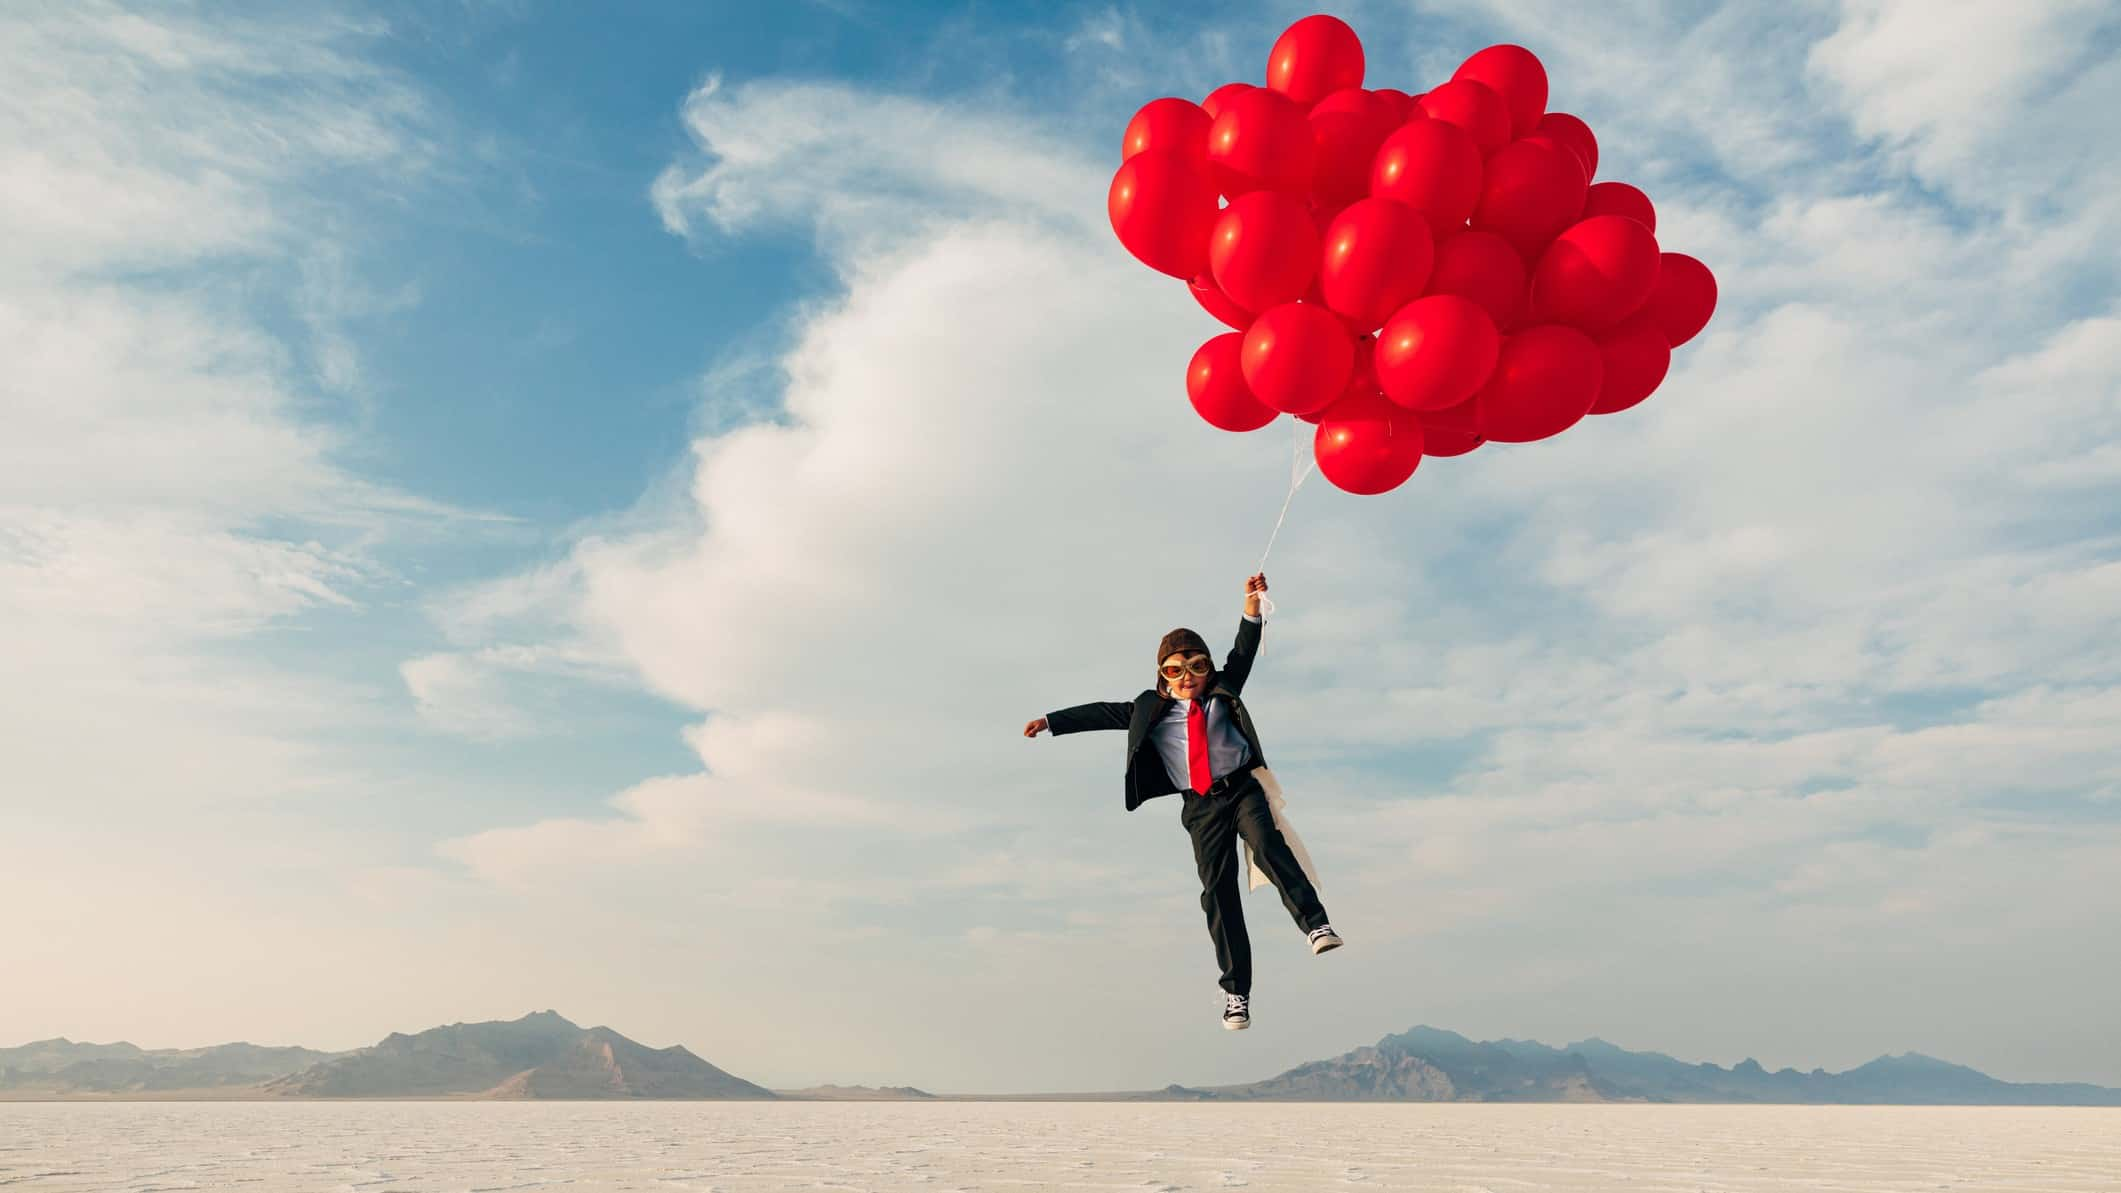 a boy dressed in a business suit and old fashioned flying helmet and goggles is lifted by a bunch of red helium balloons over a barren desert landscape.